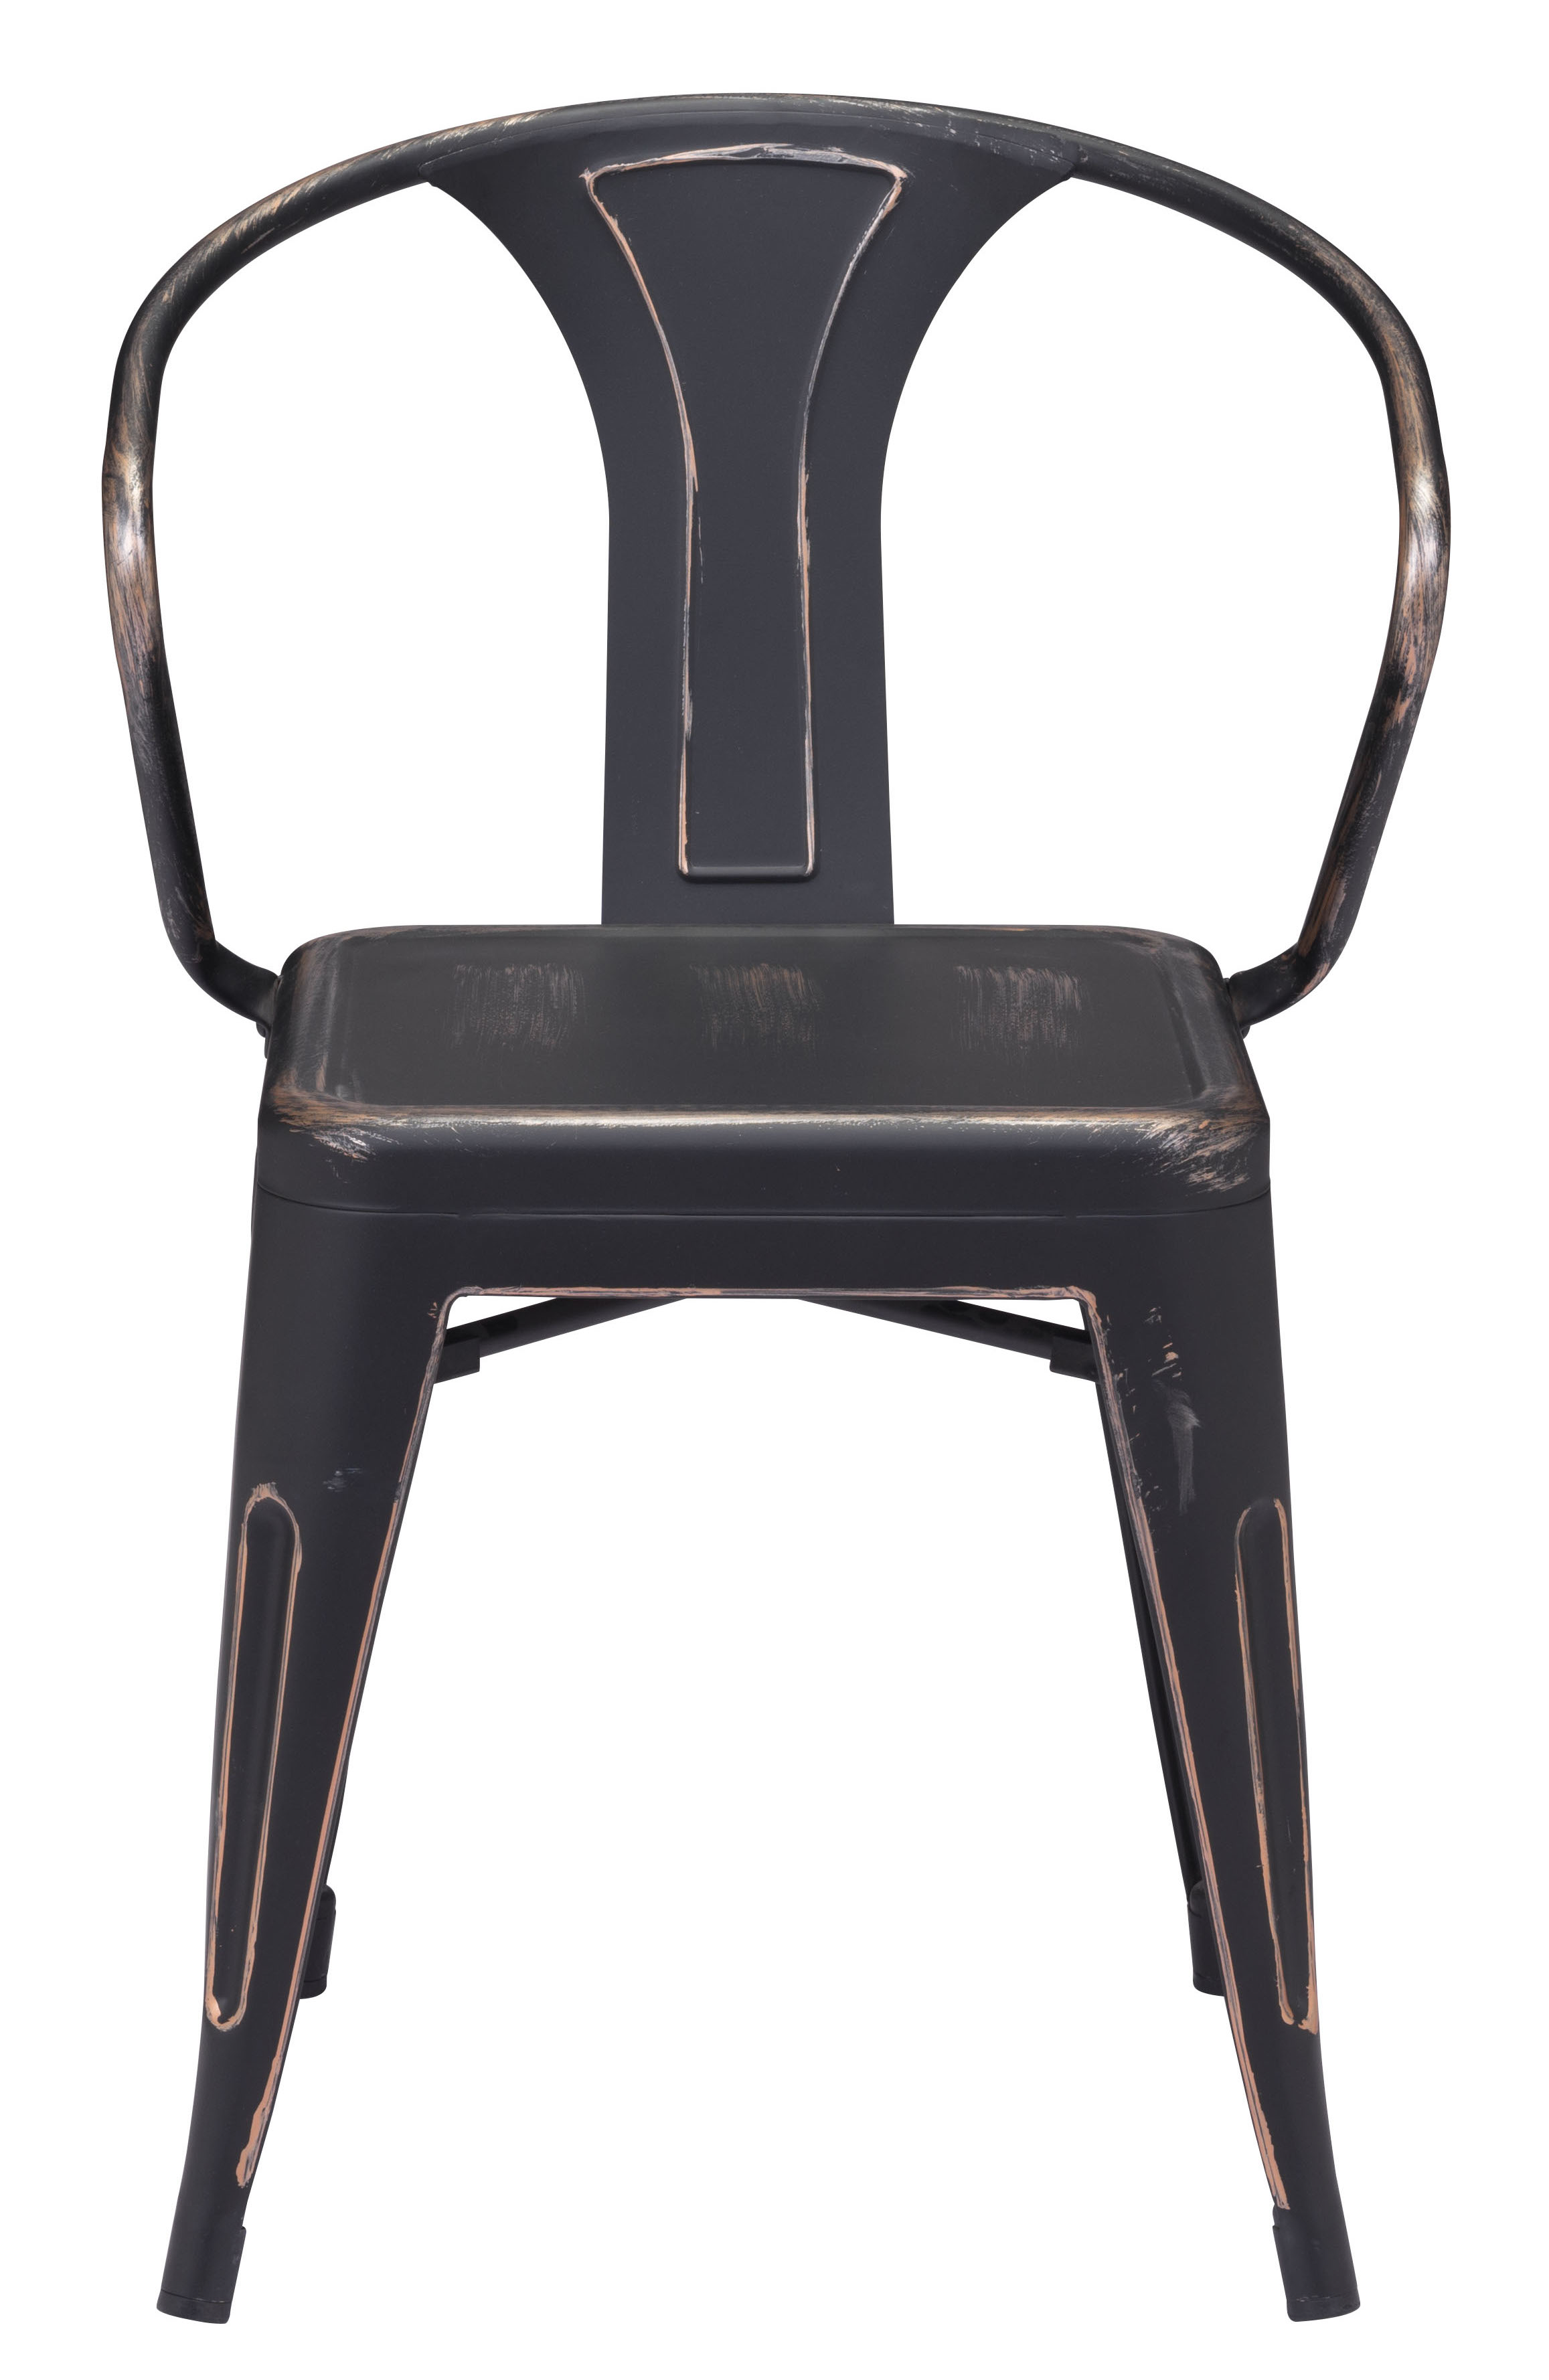 helix-chair-antique-black-gold.jpg